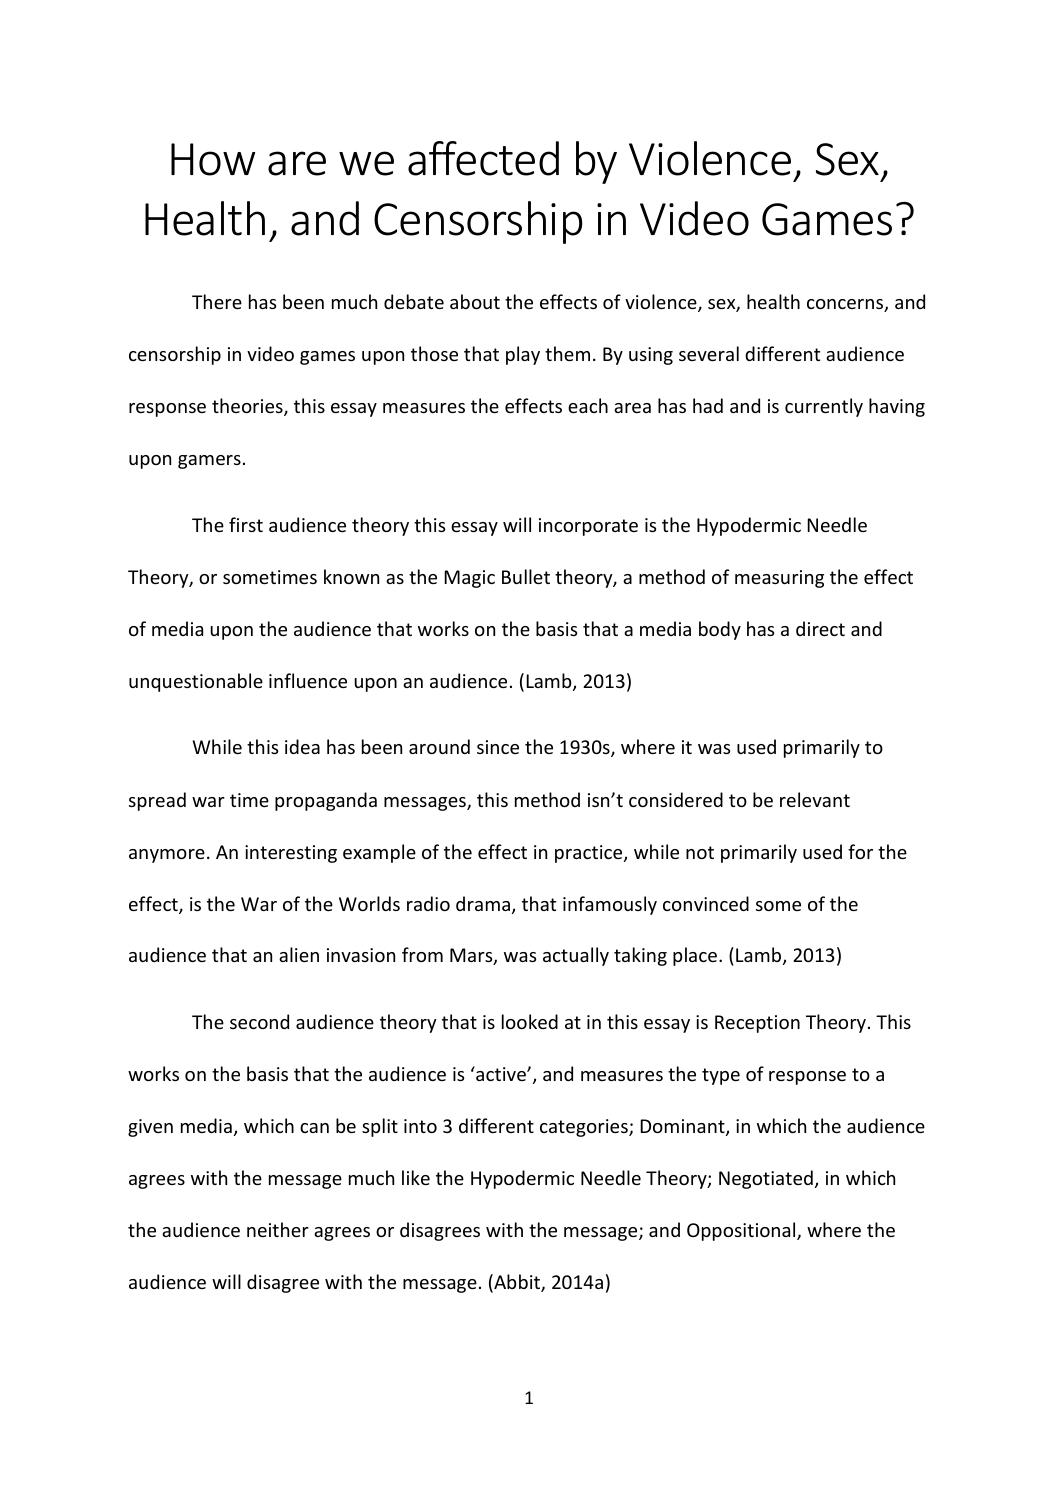 Essay On Video Game Violence